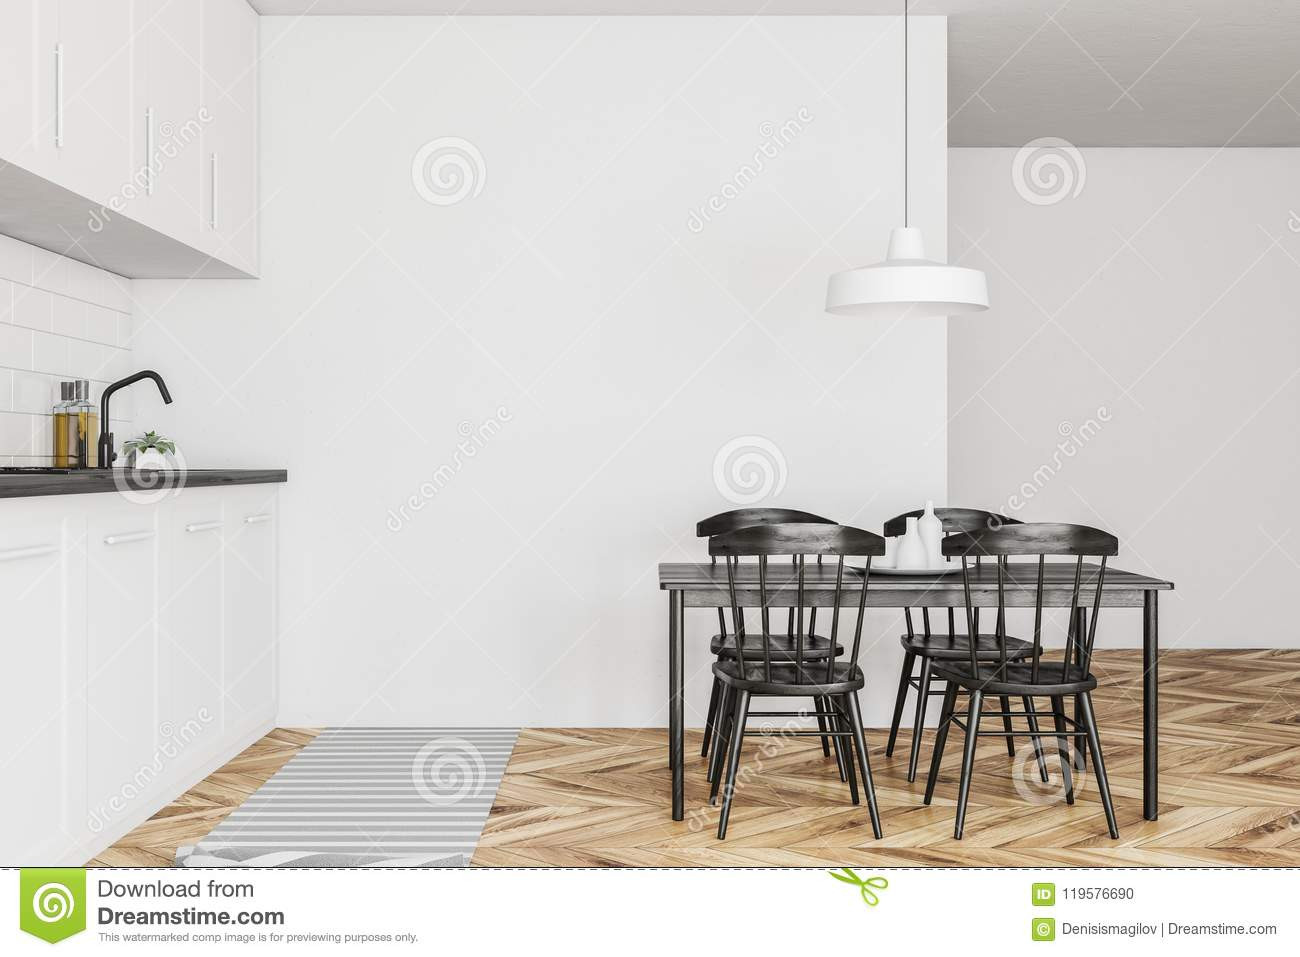 using hardwood flooring on walls of white kitchen interior black table wood stock illustration pertaining to side view of a scandinavian style kitchen with white walls a wooden floor white countertops and cabinets and a table with black chairs